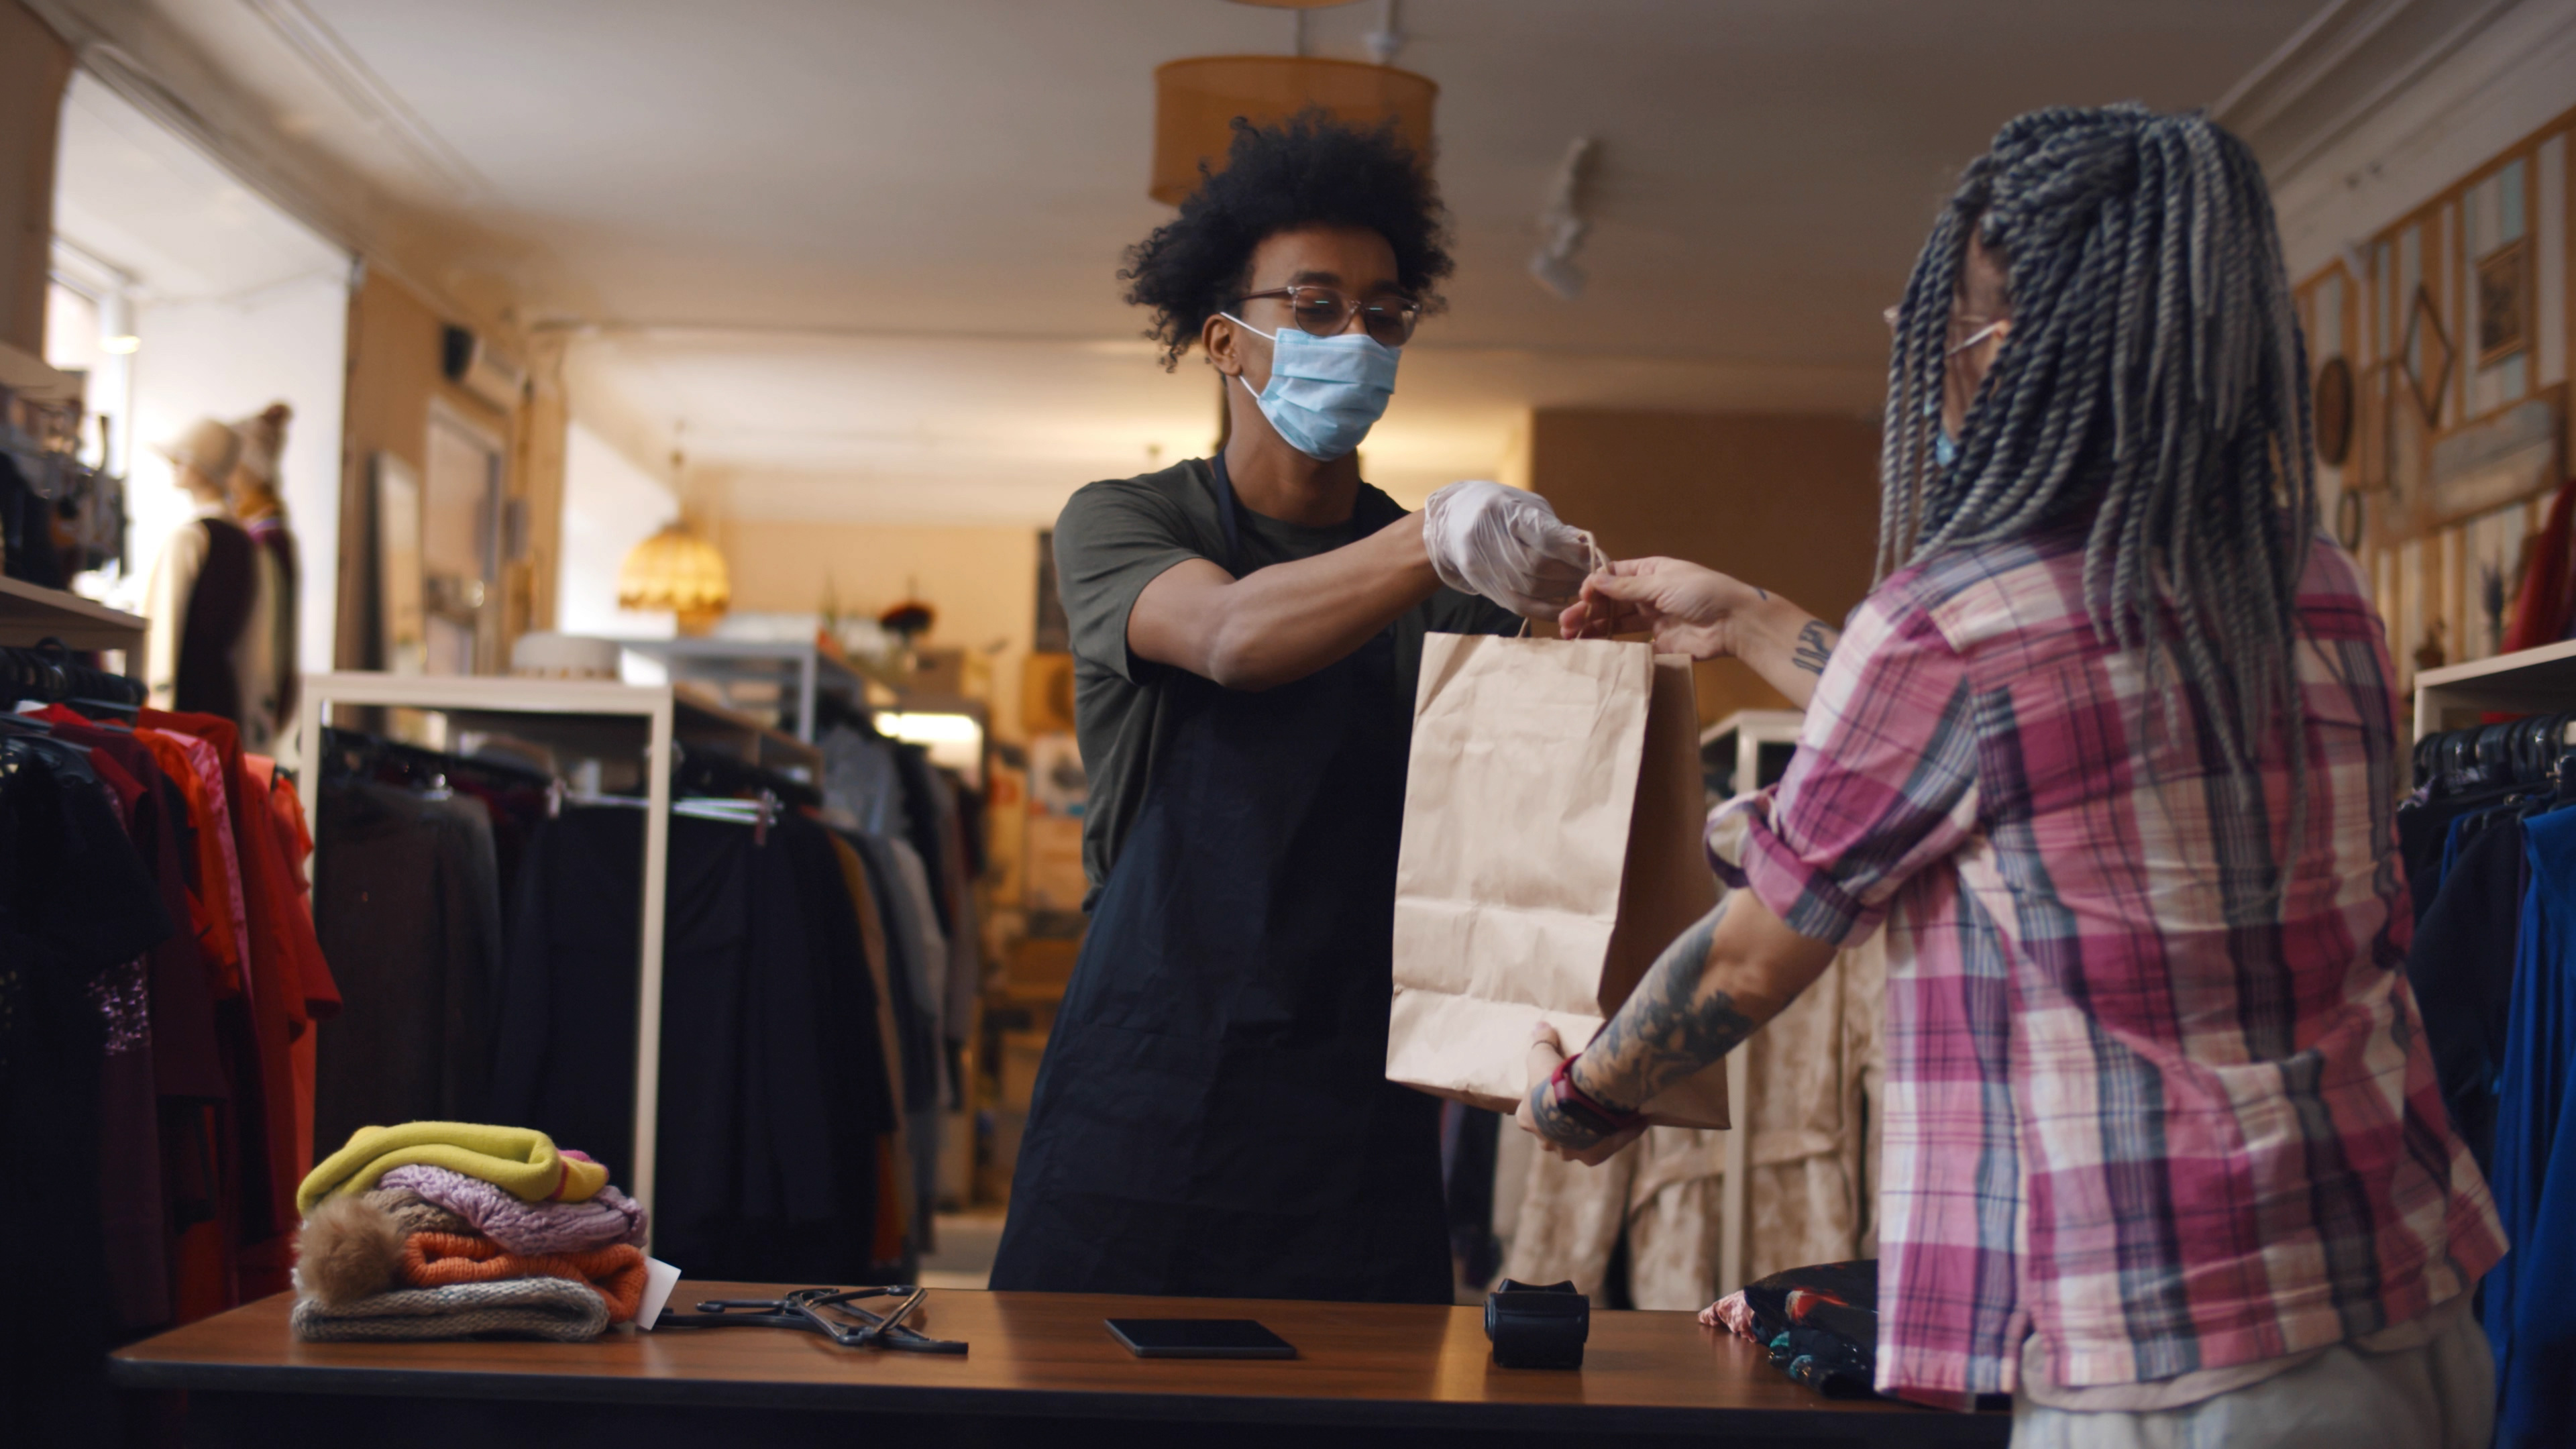 Young woman in safety mask purchasing in clothes store. African american shopkeeper man wearing medical mask and gloves working at clothing store